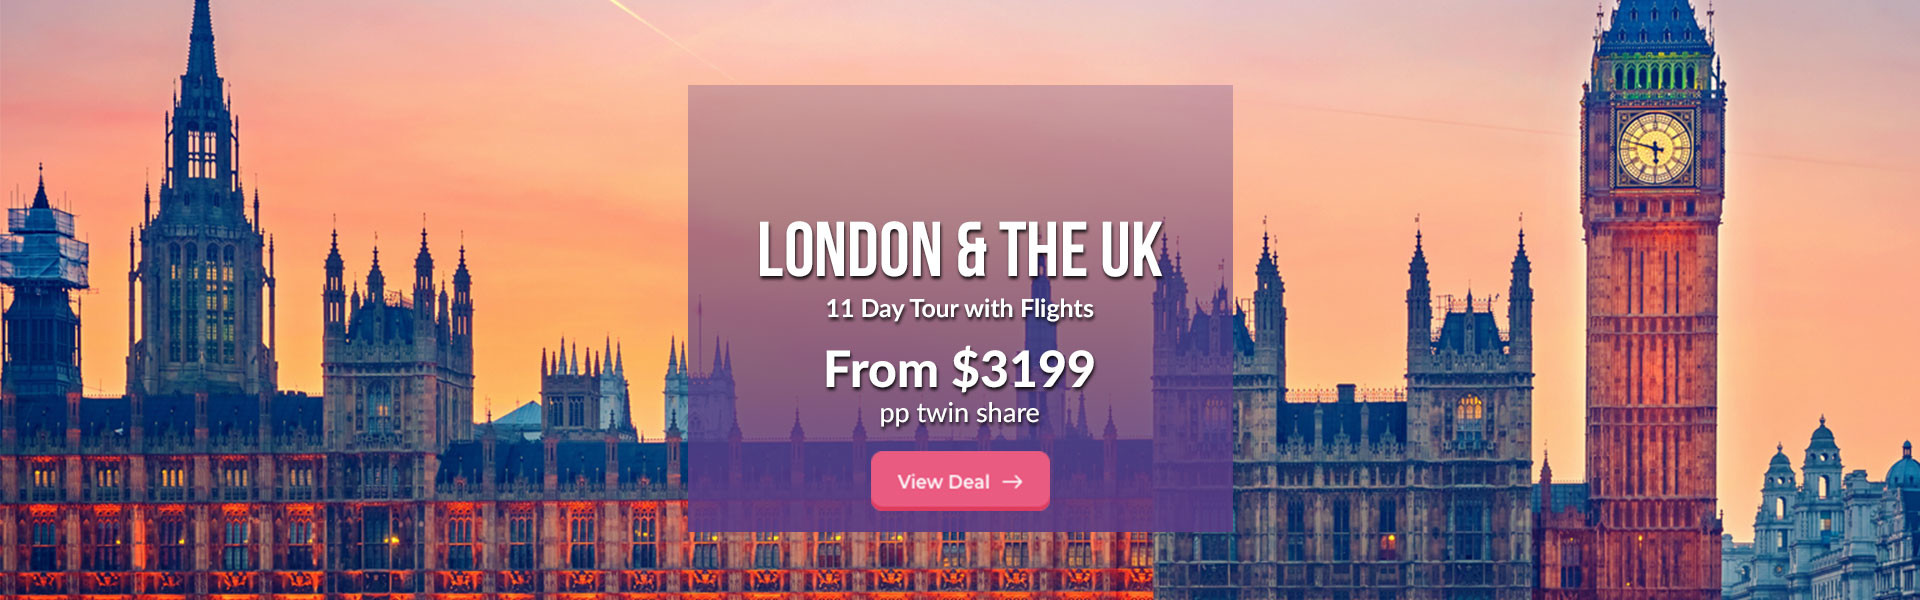 UK Tour with Flights